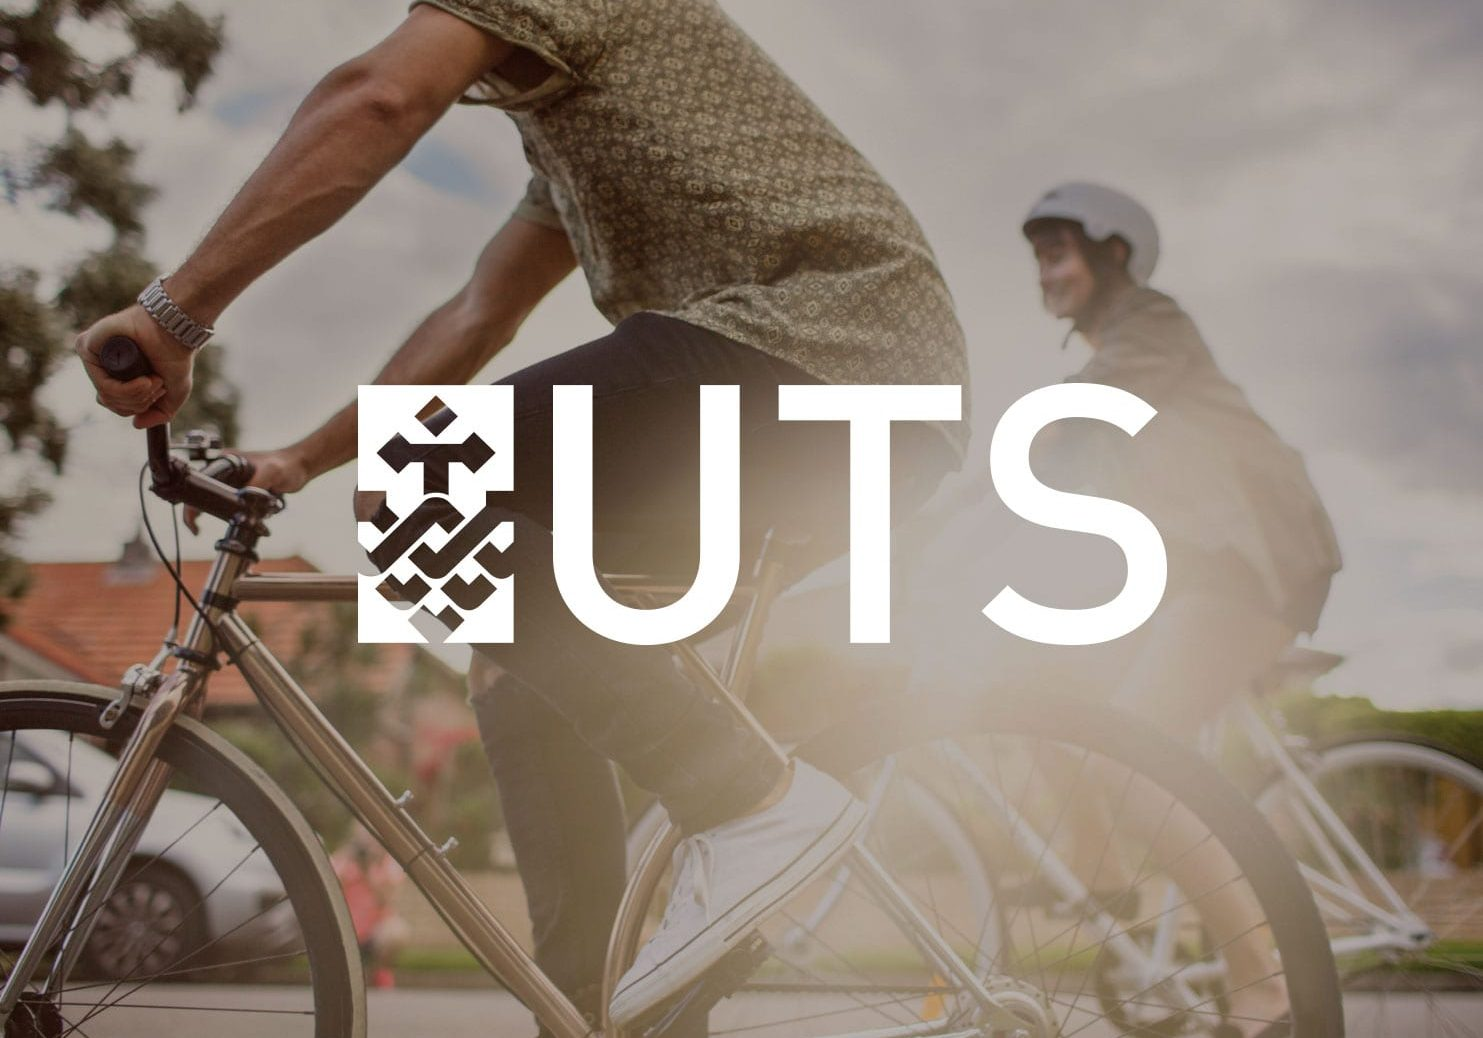 UTS Tulip Program<br> Collateral / Stationery